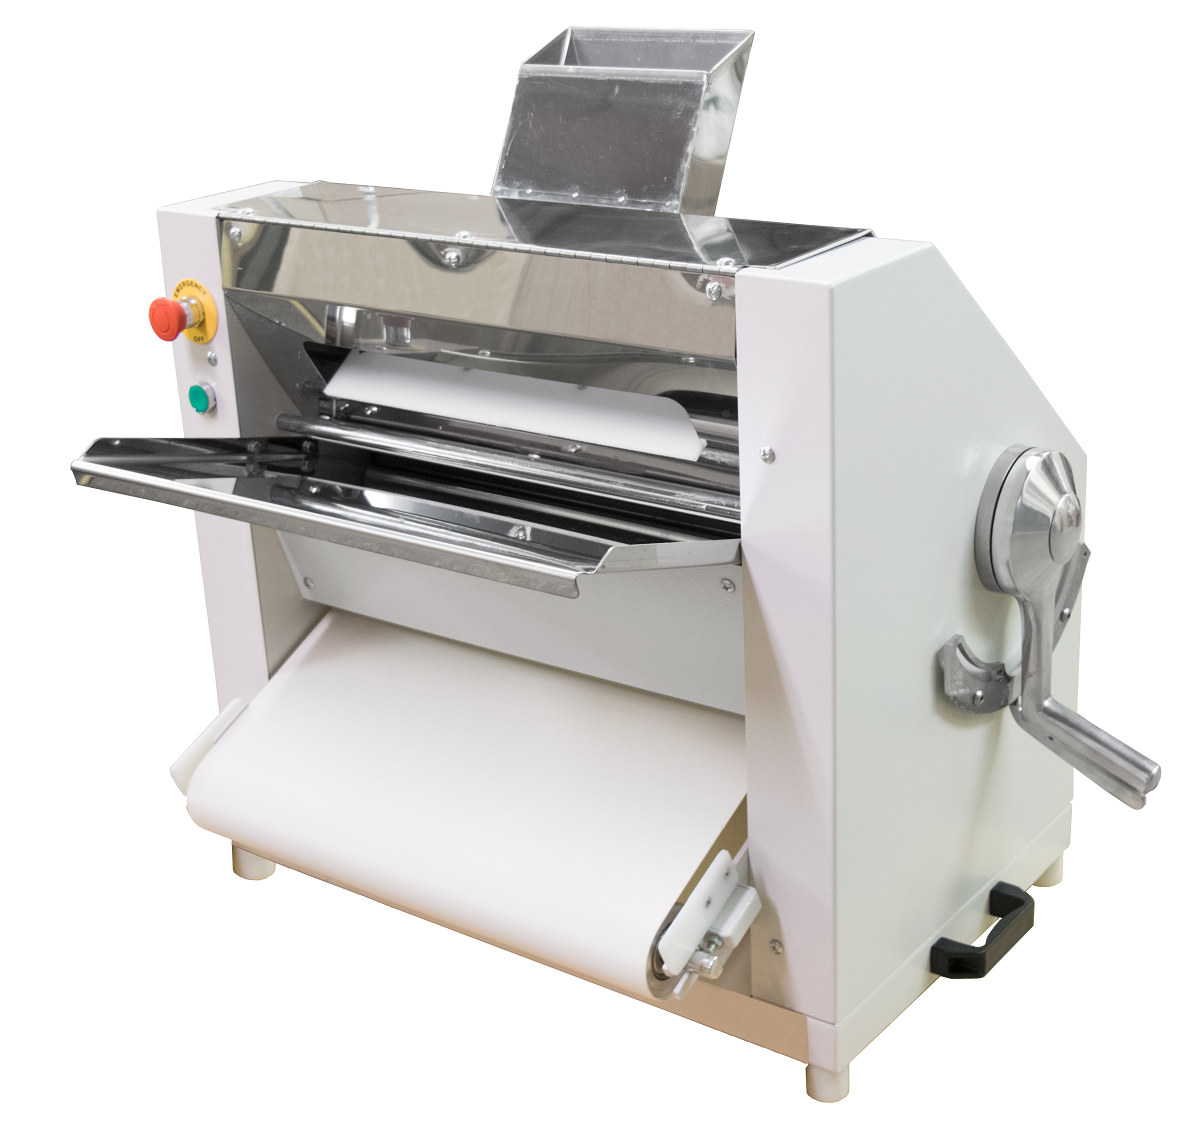 American Eagle Food Machinery Countertop Dough Roller, 115V/60Hz/1Ph, AE-PS01 - Right View